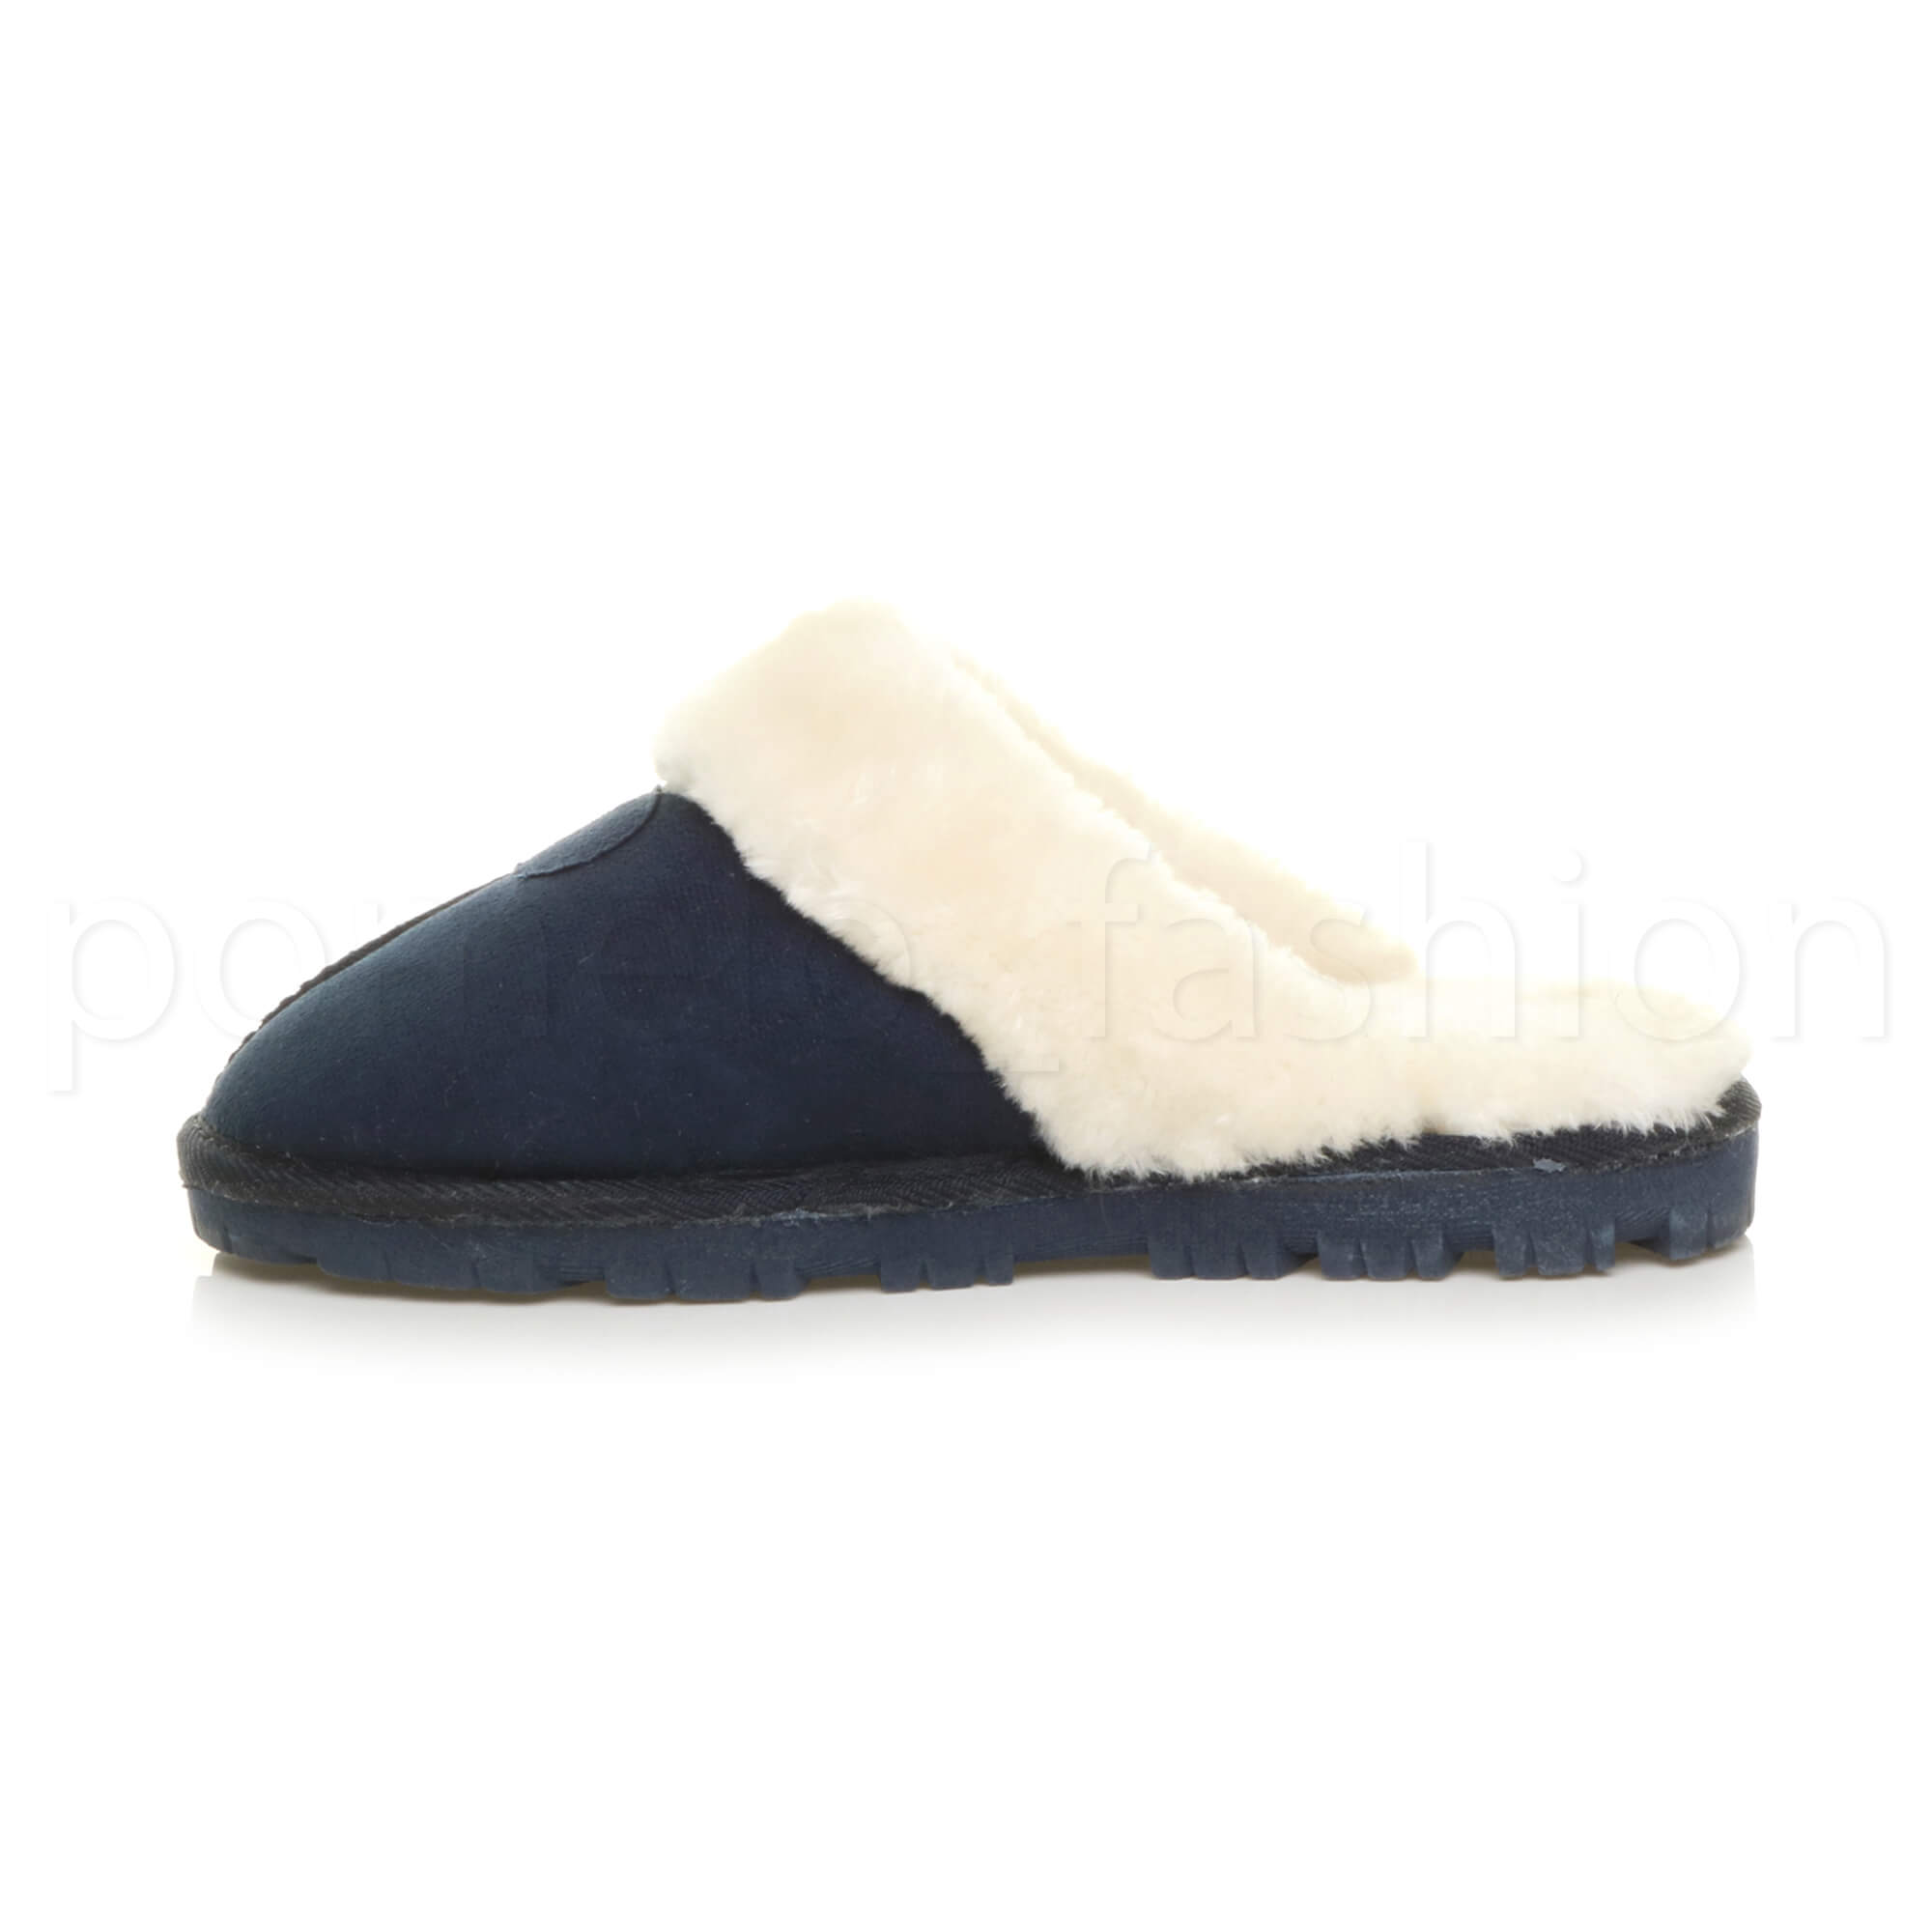 WOMENS-LADIES-FLAT-FUR-LINED-COMFORTABLE-WINTER-MULES-SLIPPERS-HOUSE-SHOES-SIZE thumbnail 60